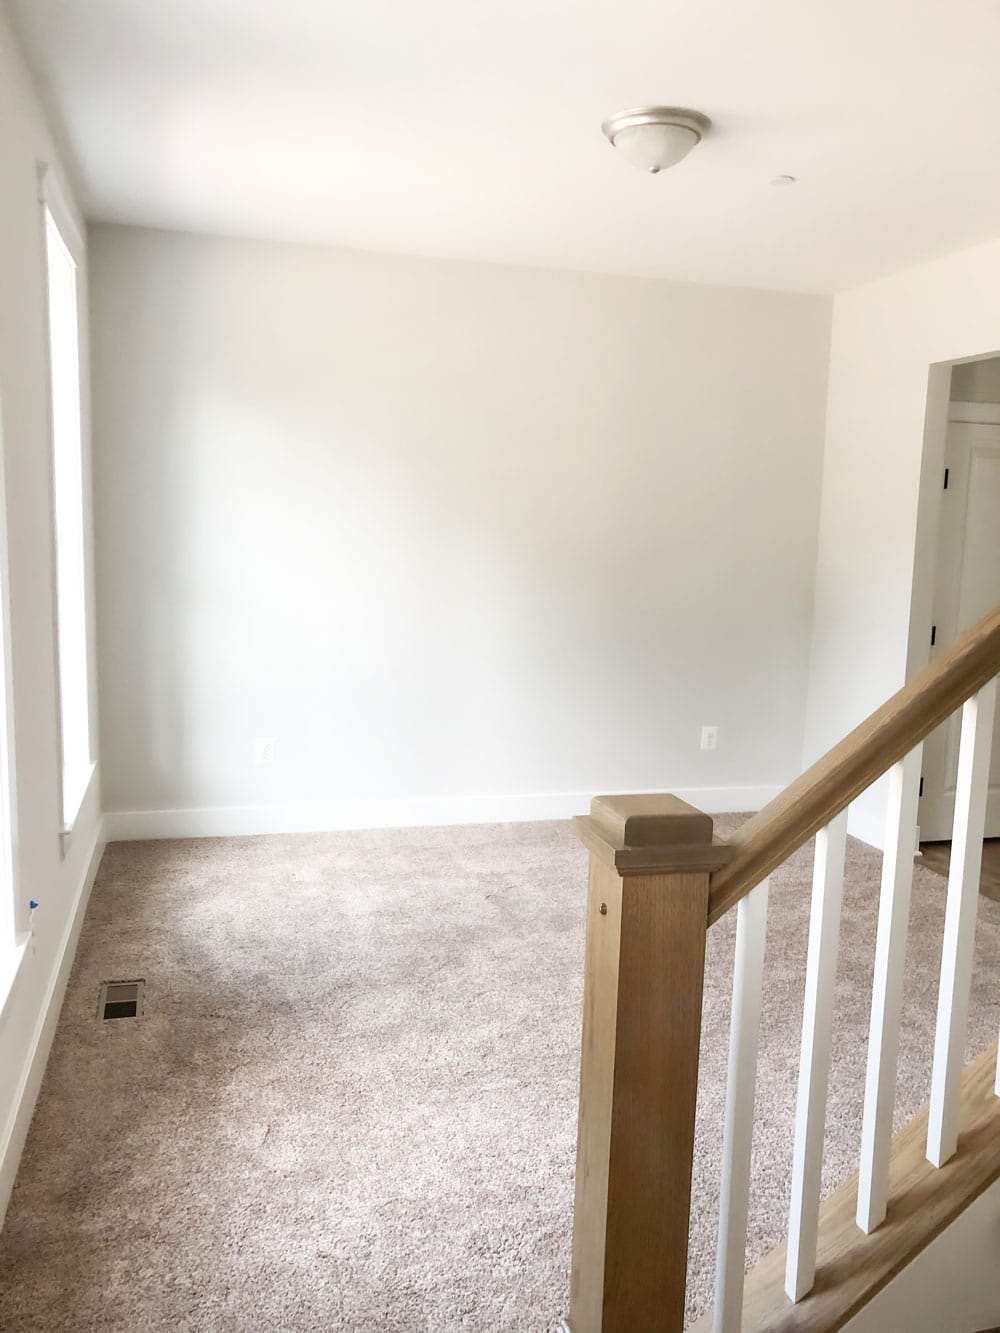 Custom home tour photos. This photo shows the playroom in the home. It has a neutral beige looking carpet, white walls, and a single ceiling light.